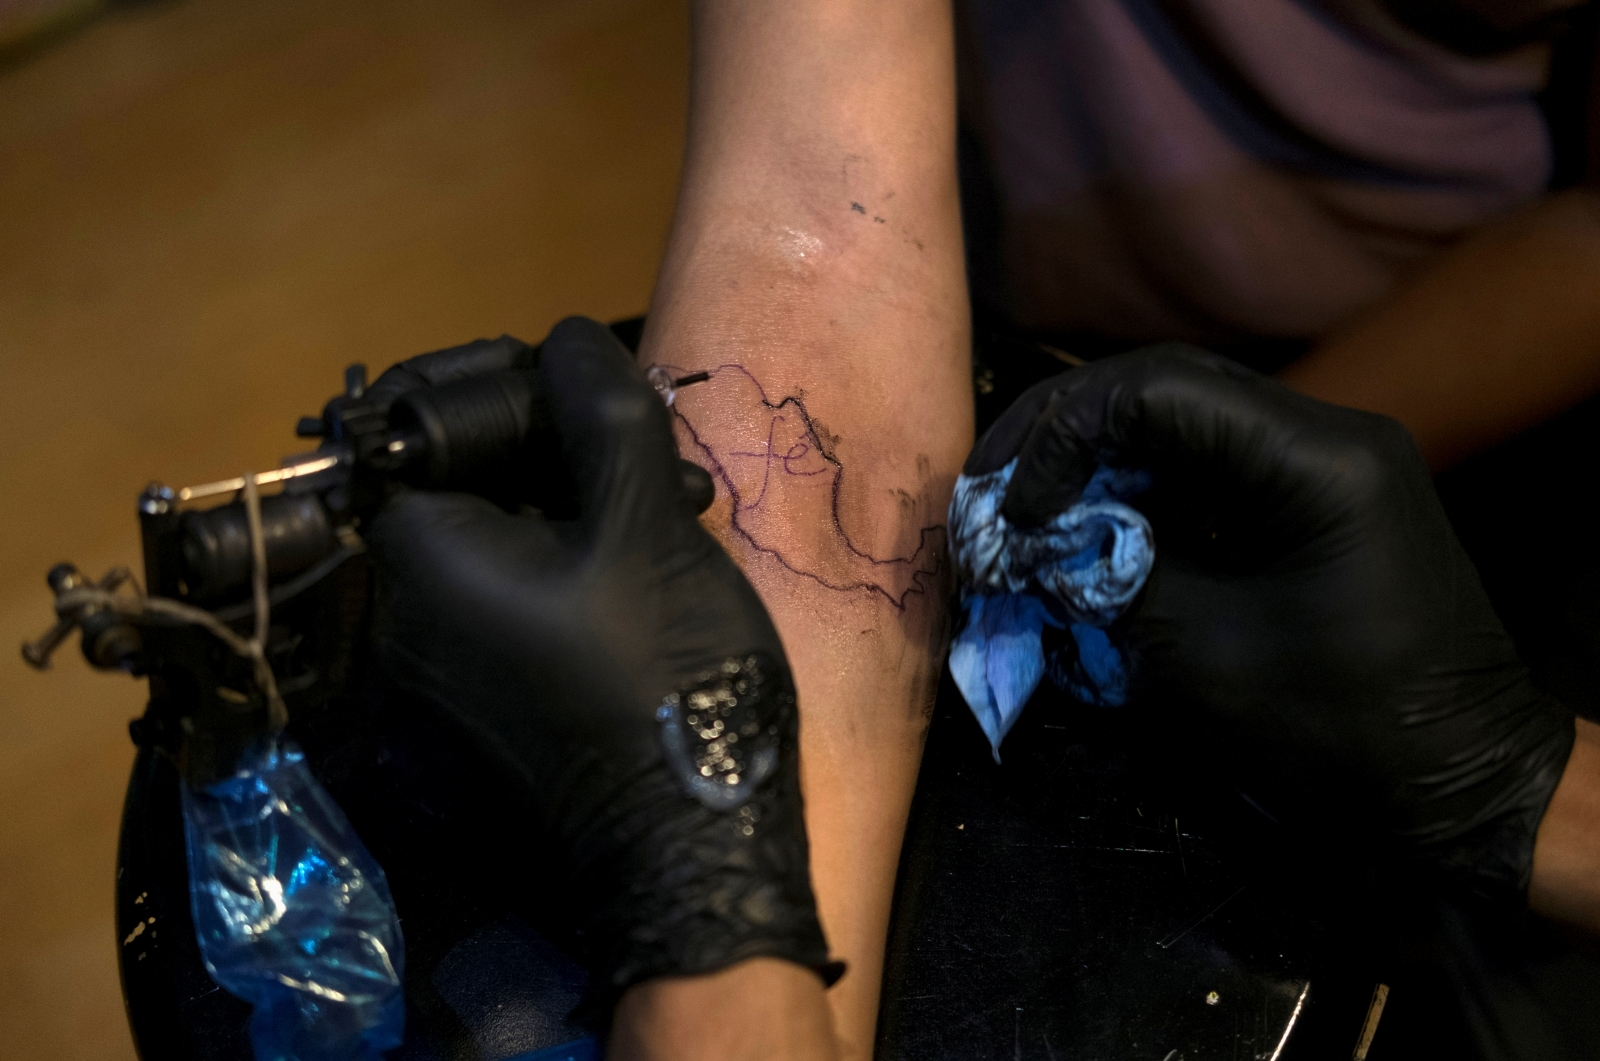 Smart Tattoo Ink Changes Color as it Monitors Vitals